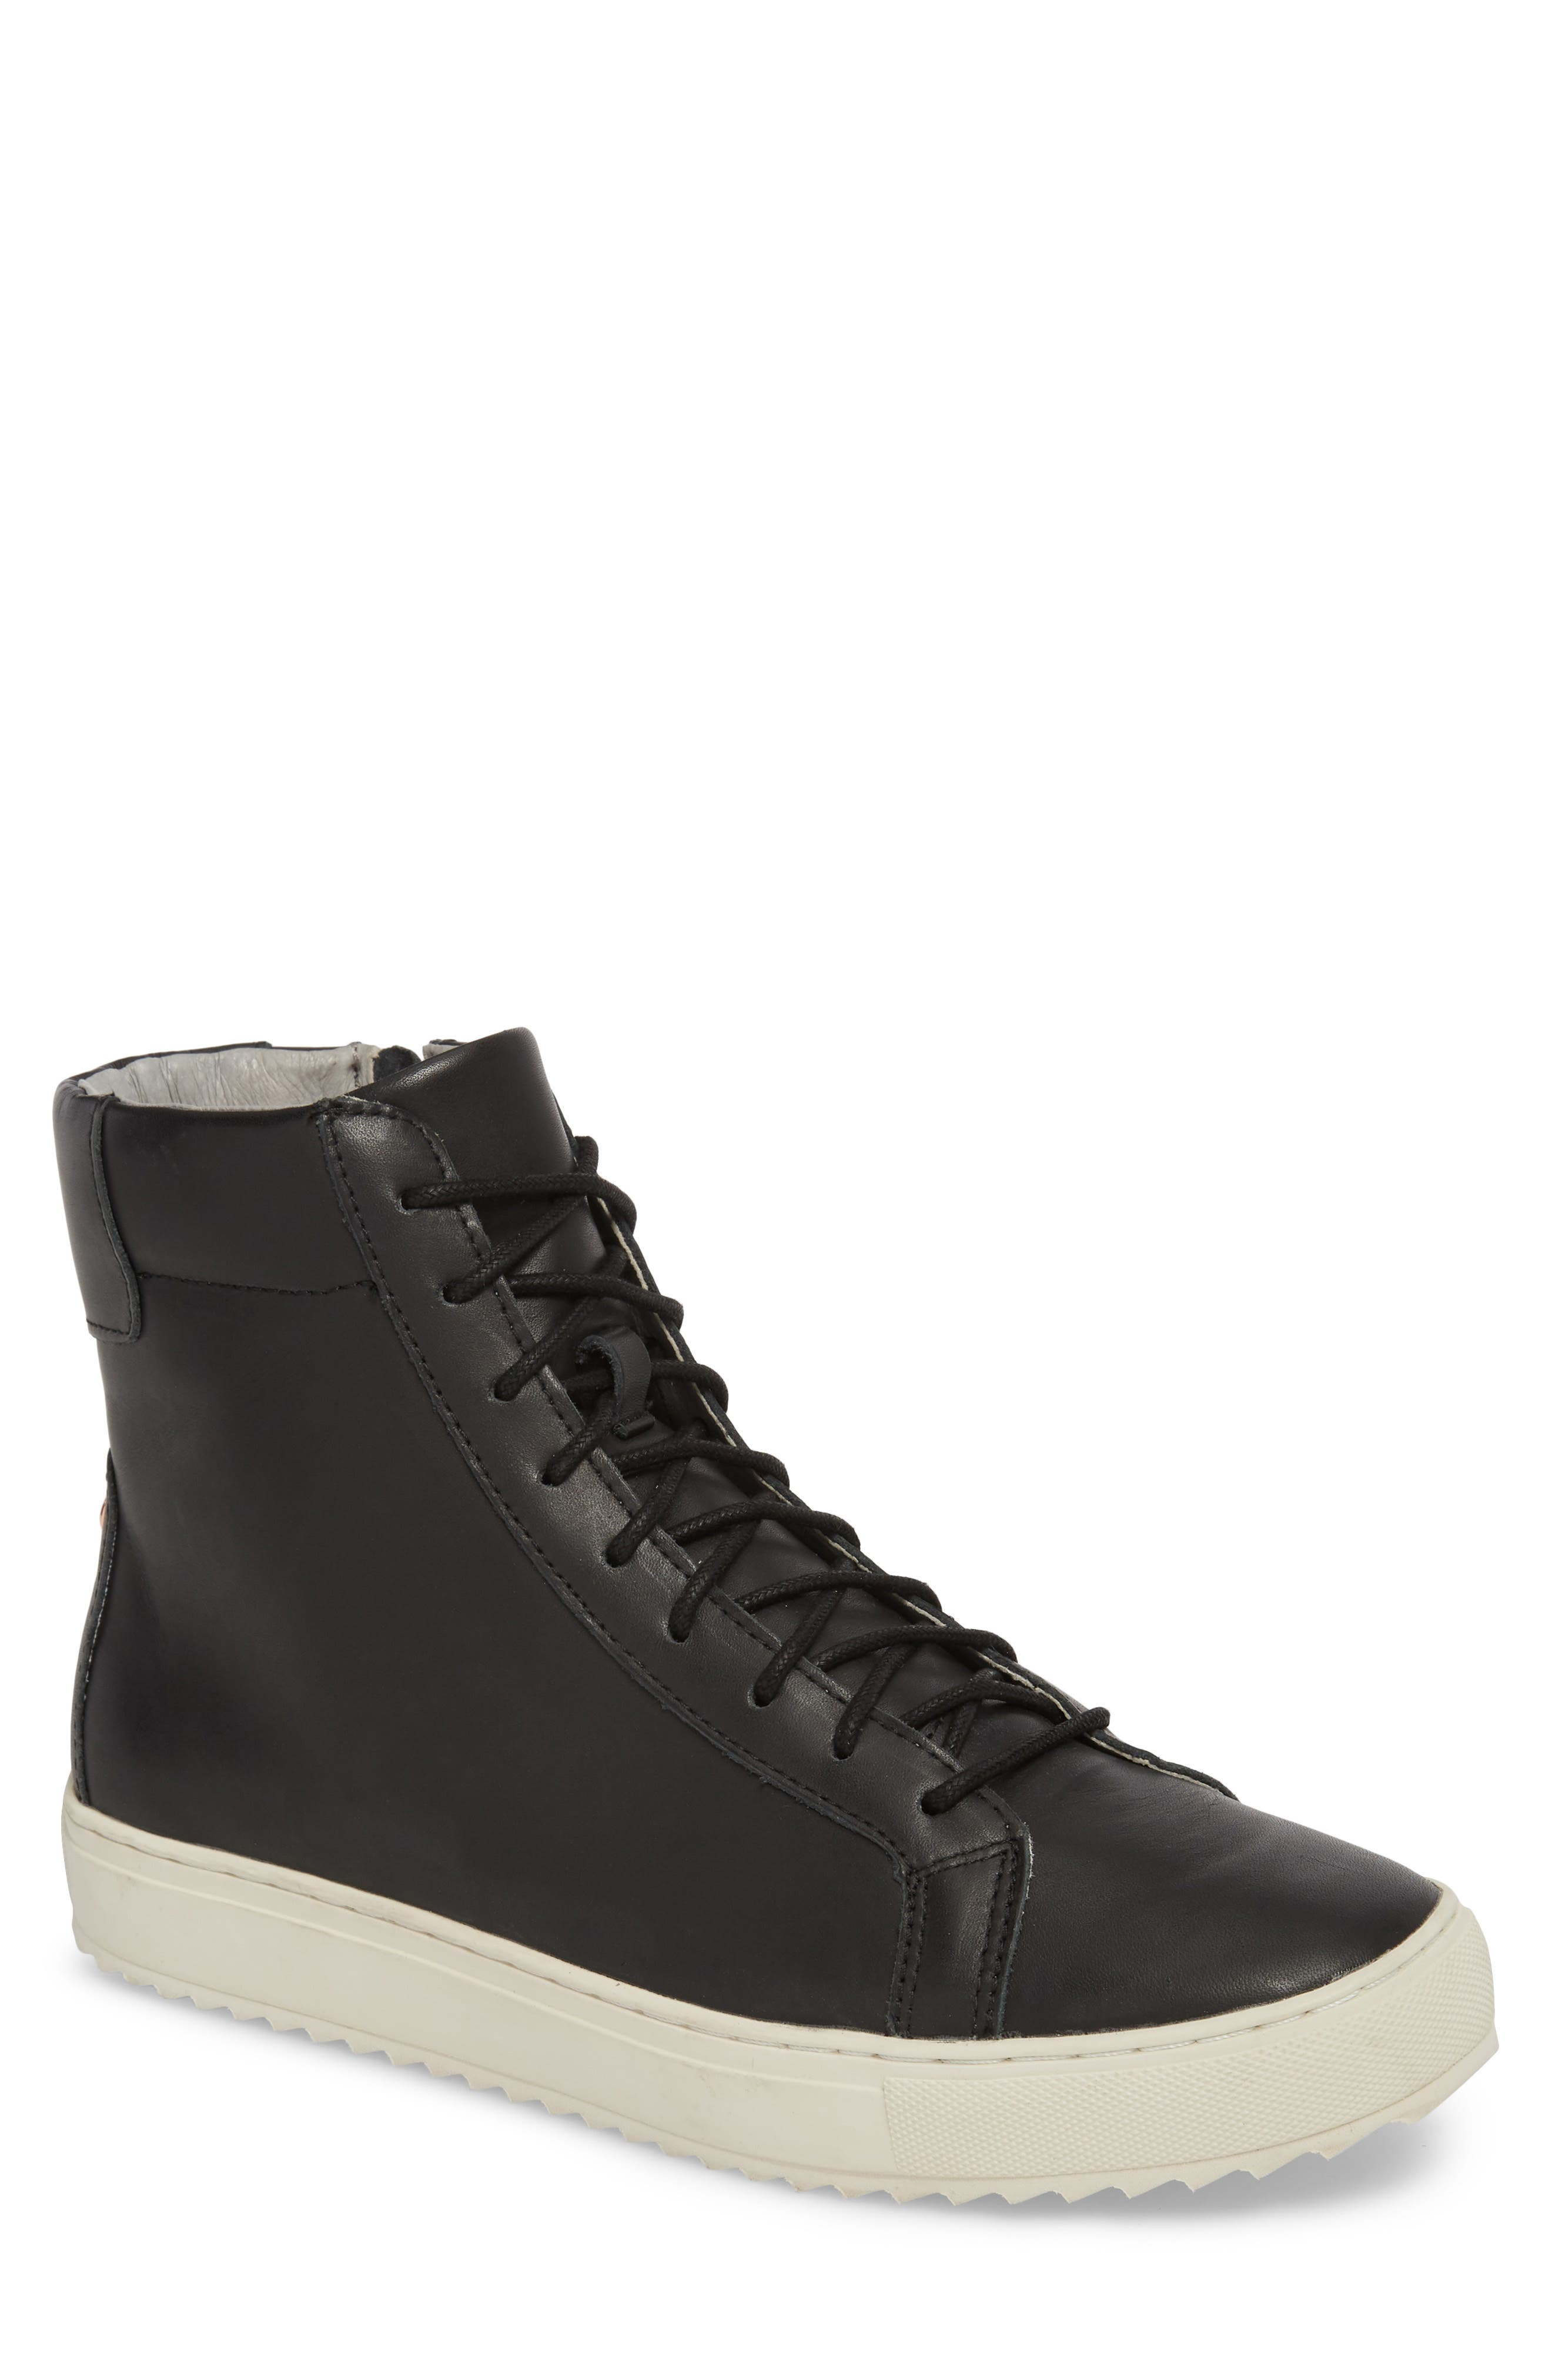 Logan Water Resistant High Top Sneaker,                             Main thumbnail 1, color,                             Kettle Leather